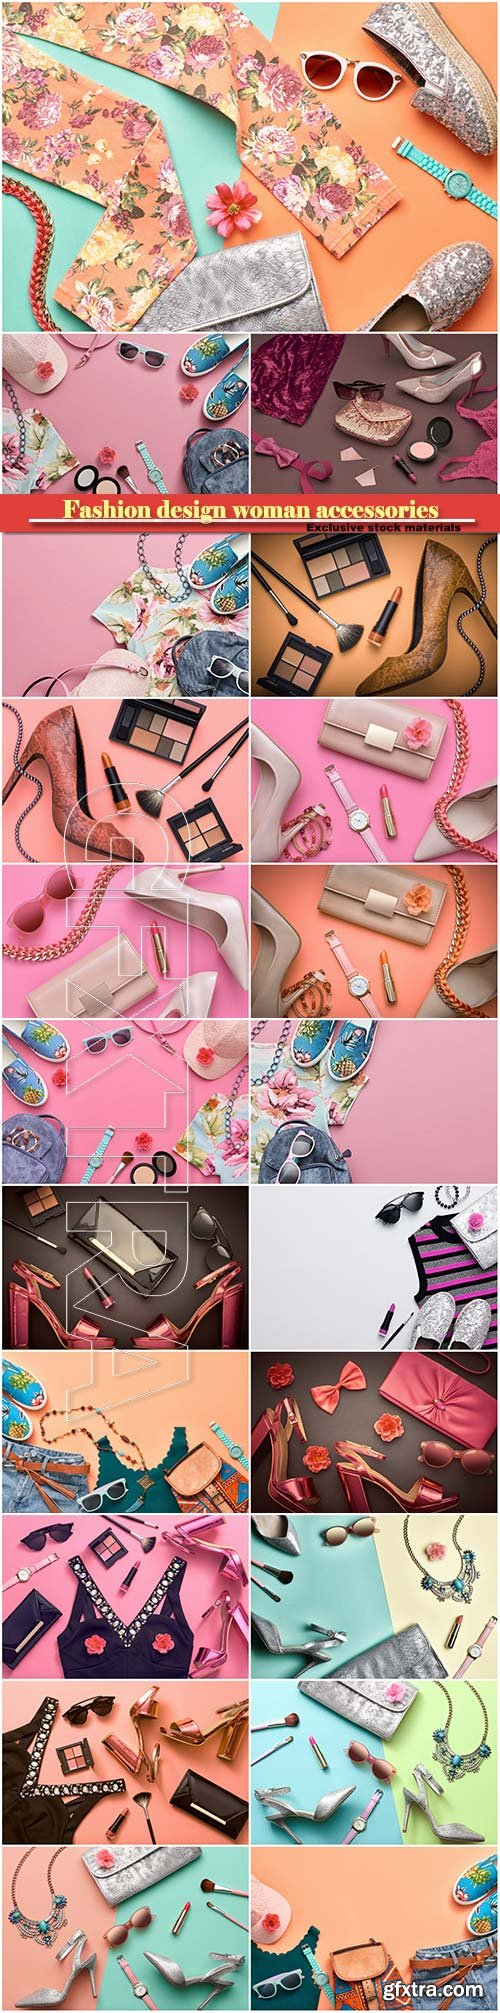 Fashion design woman accessories set